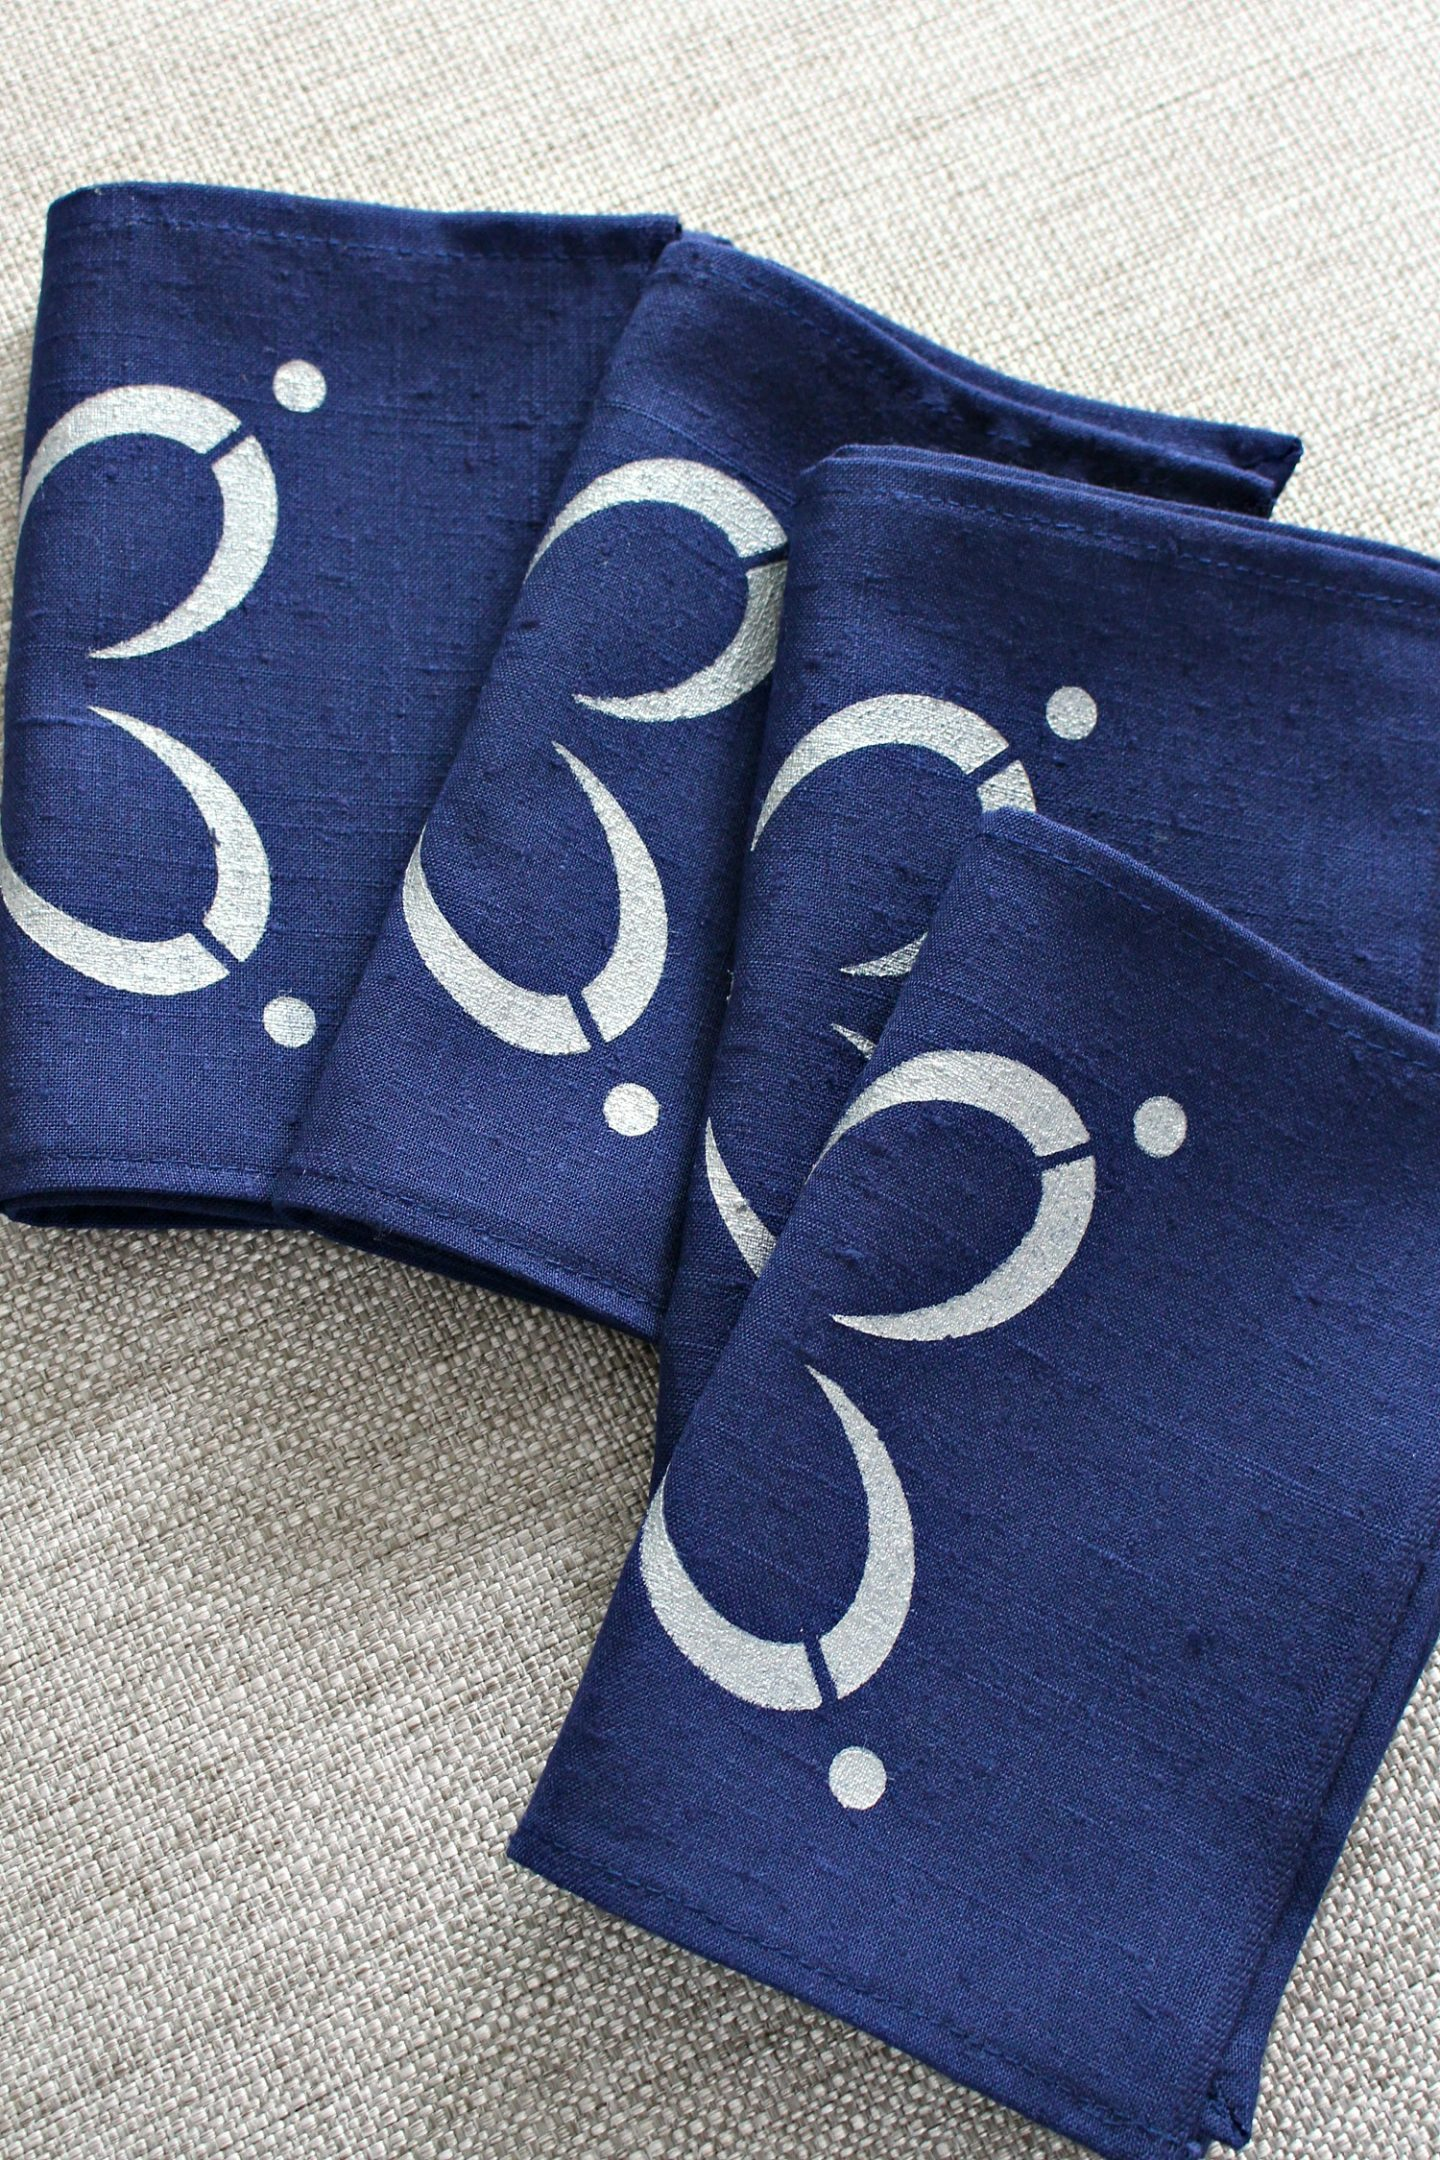 DIY Stenciled Napkins